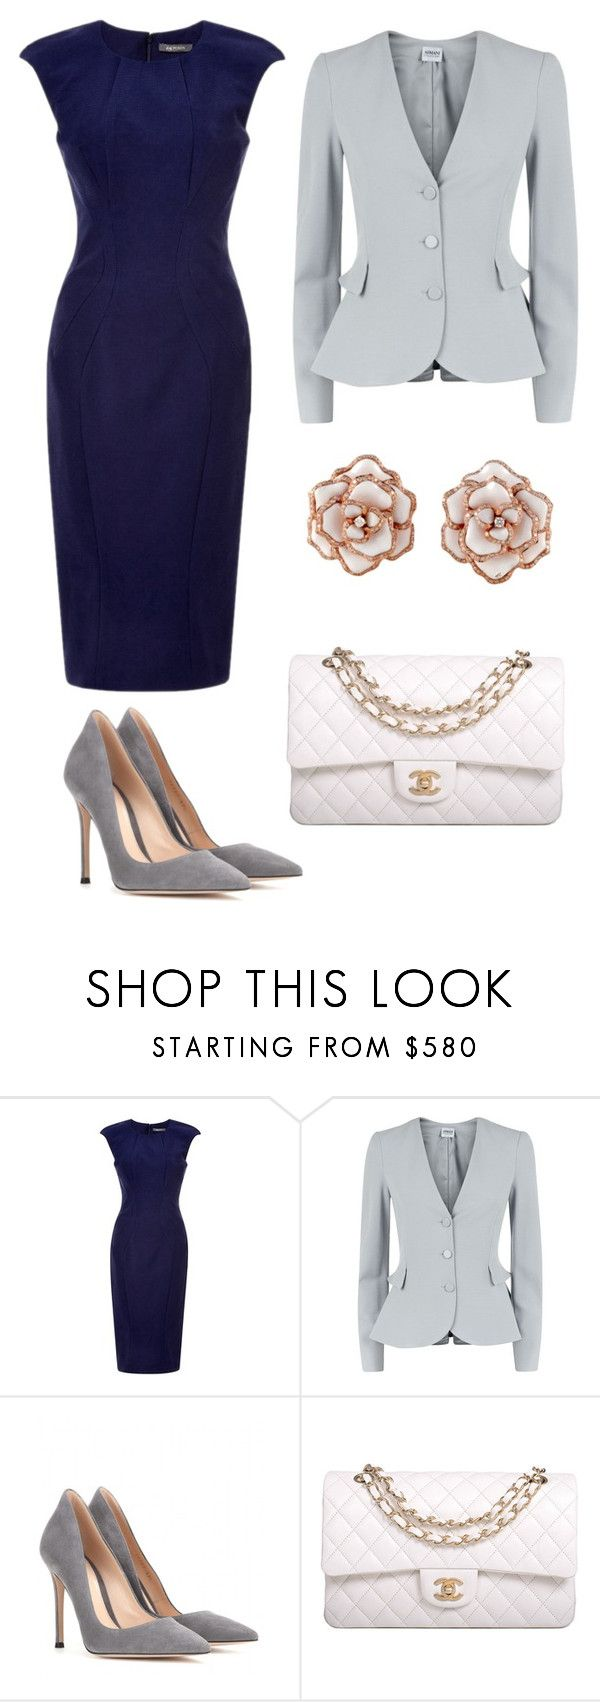 """Untitled #13"" by claireyim ❤ liked on Polyvore featuring mode, Armani Collezioni, Gianvito Rossi en Chanel"